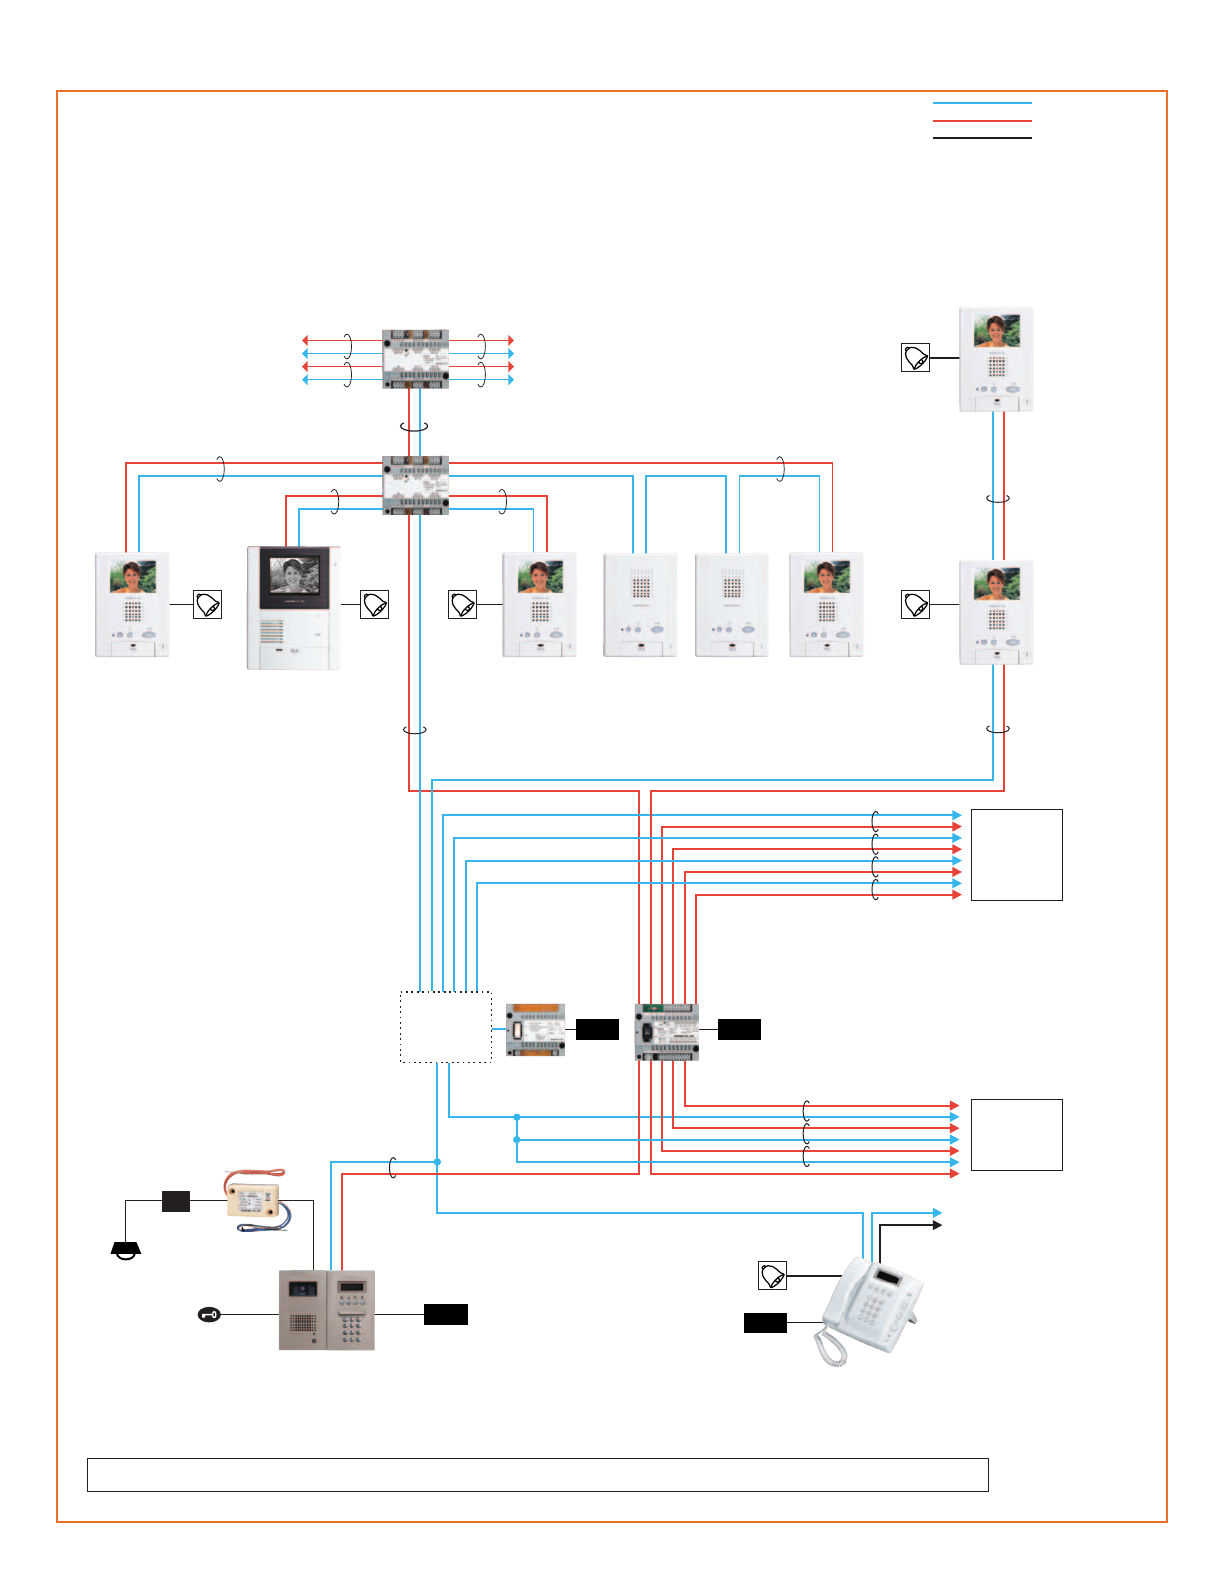 page 4 of aiphone intercom system gh series user guide rh phone manualsonline com aiphone gh-1kd installation manual aiphone gh-1ad user manual